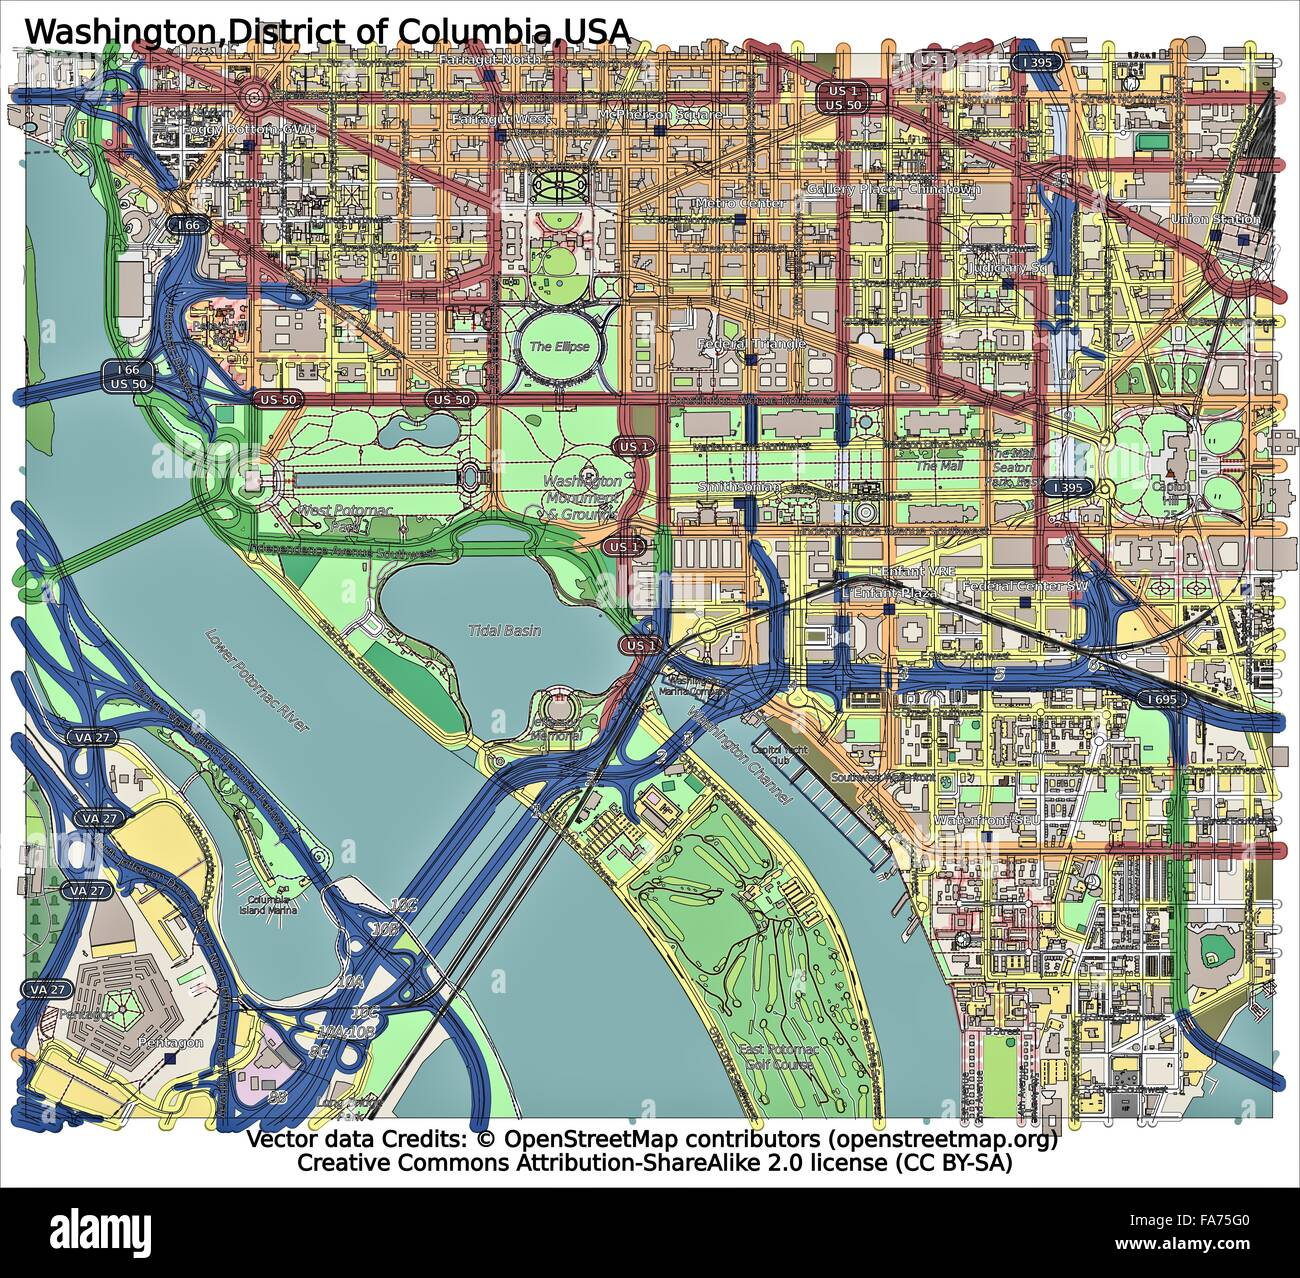 Washington DC USA location map Stock Photo: 92356432 - Alamy